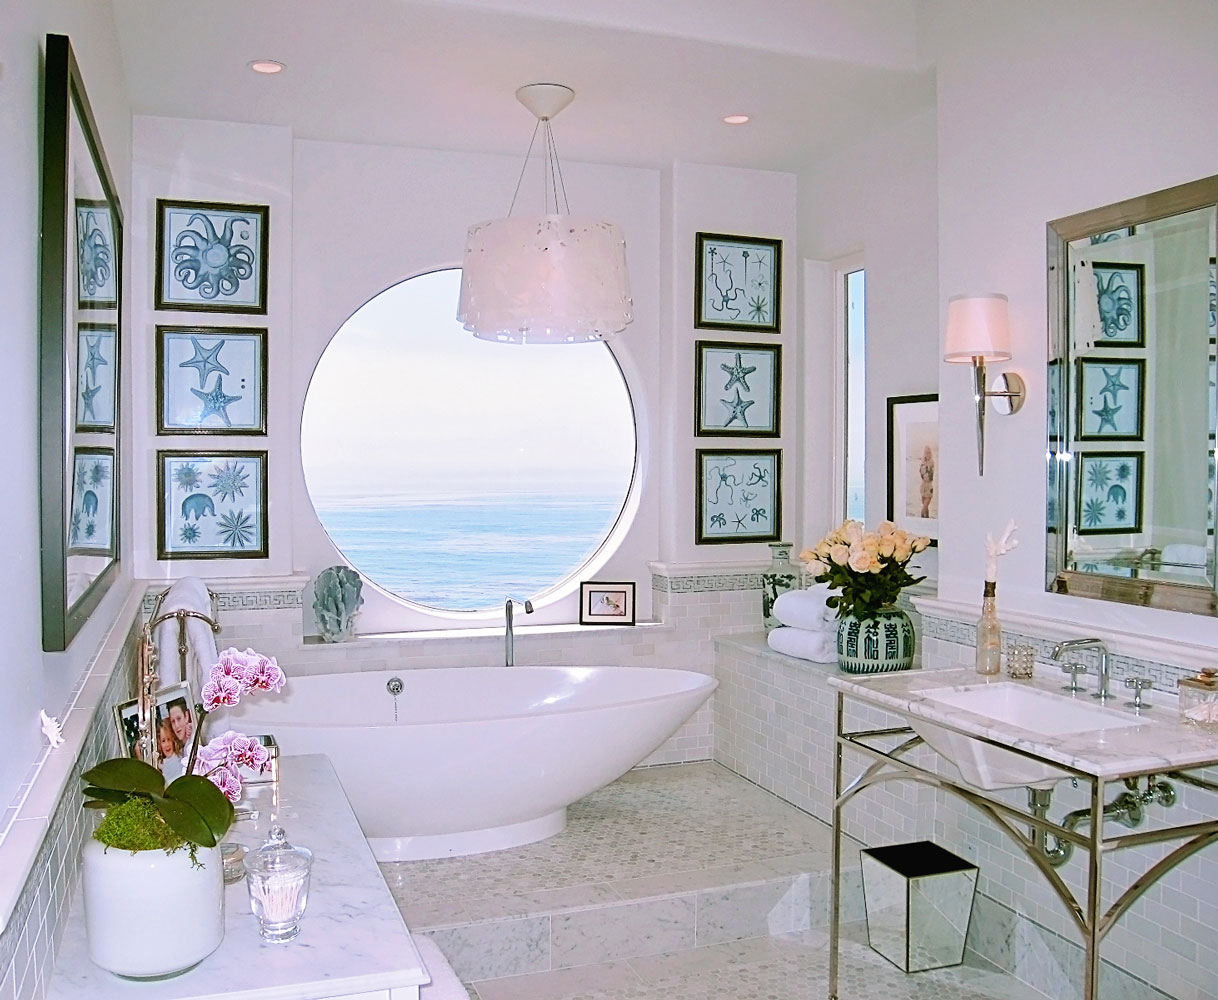 1-bathtub-carawan-dee-tiled-floor-vanity-bathroom.jpg